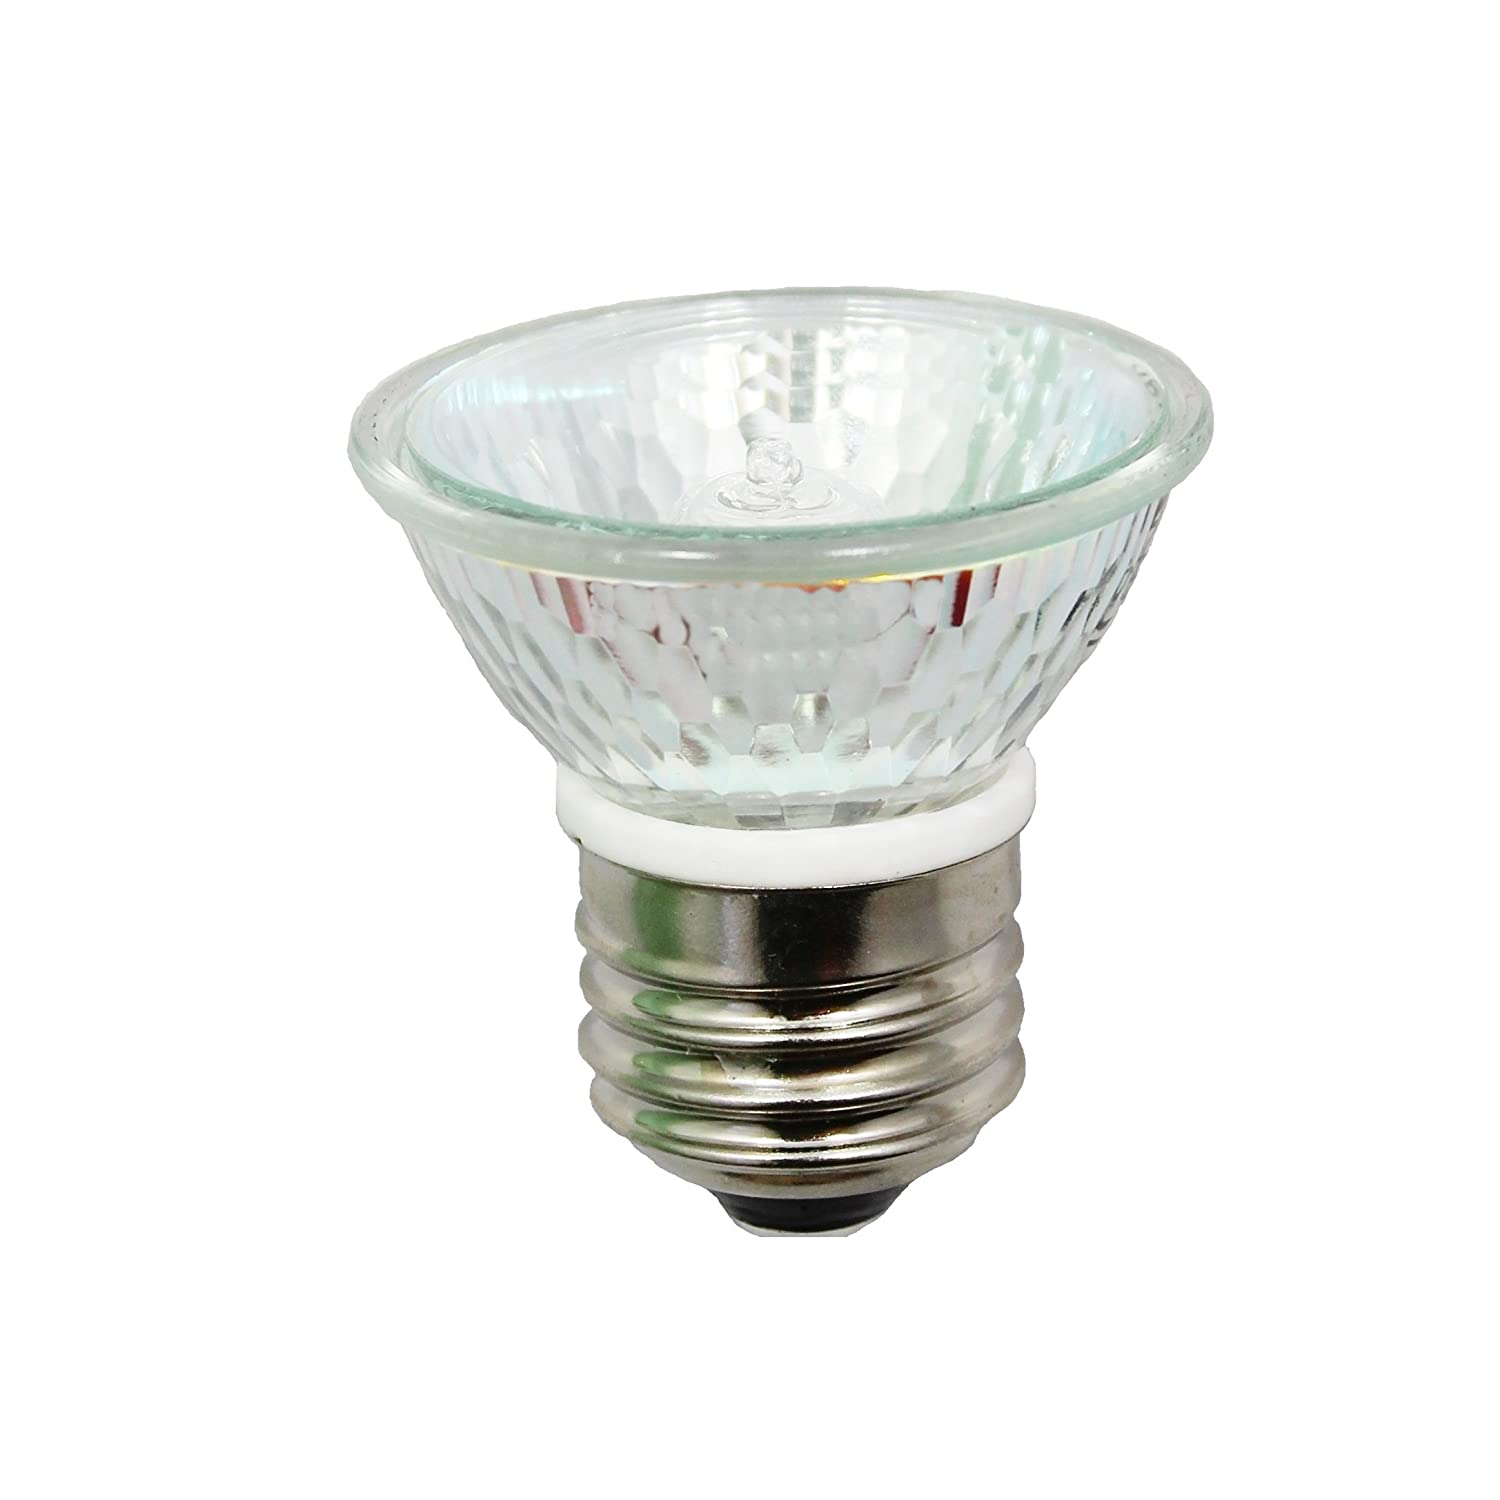 35w Mr16 E26 Base 120v: 30%OFF Anyray A1876Y (3-Bulbs) HR16 120V 35W E27/ E26 MR